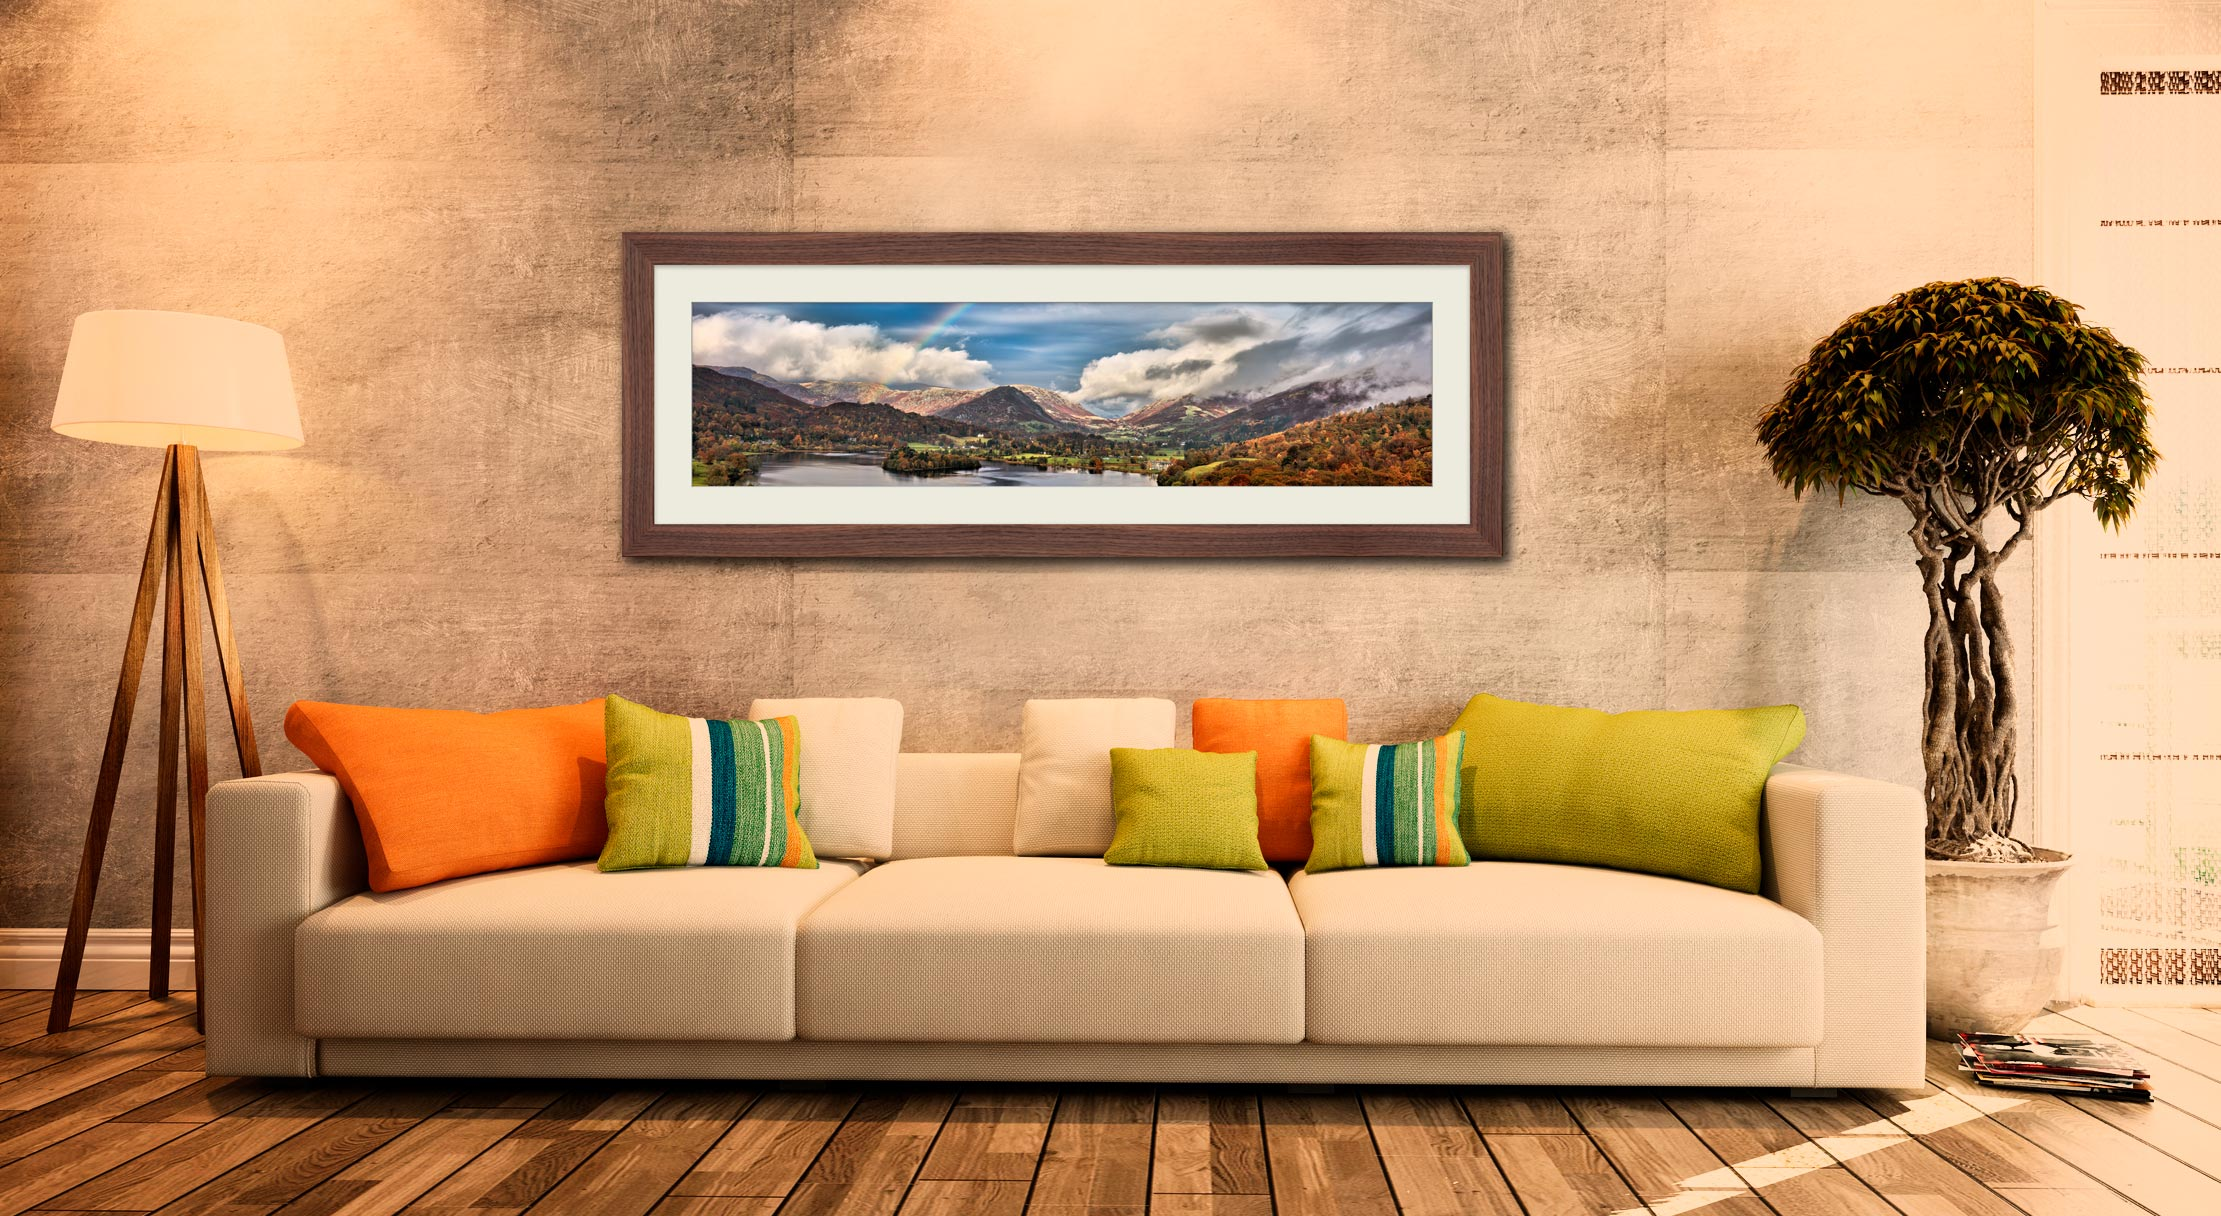 Grasmere Rainbow - Framed Print with Mount on Wall